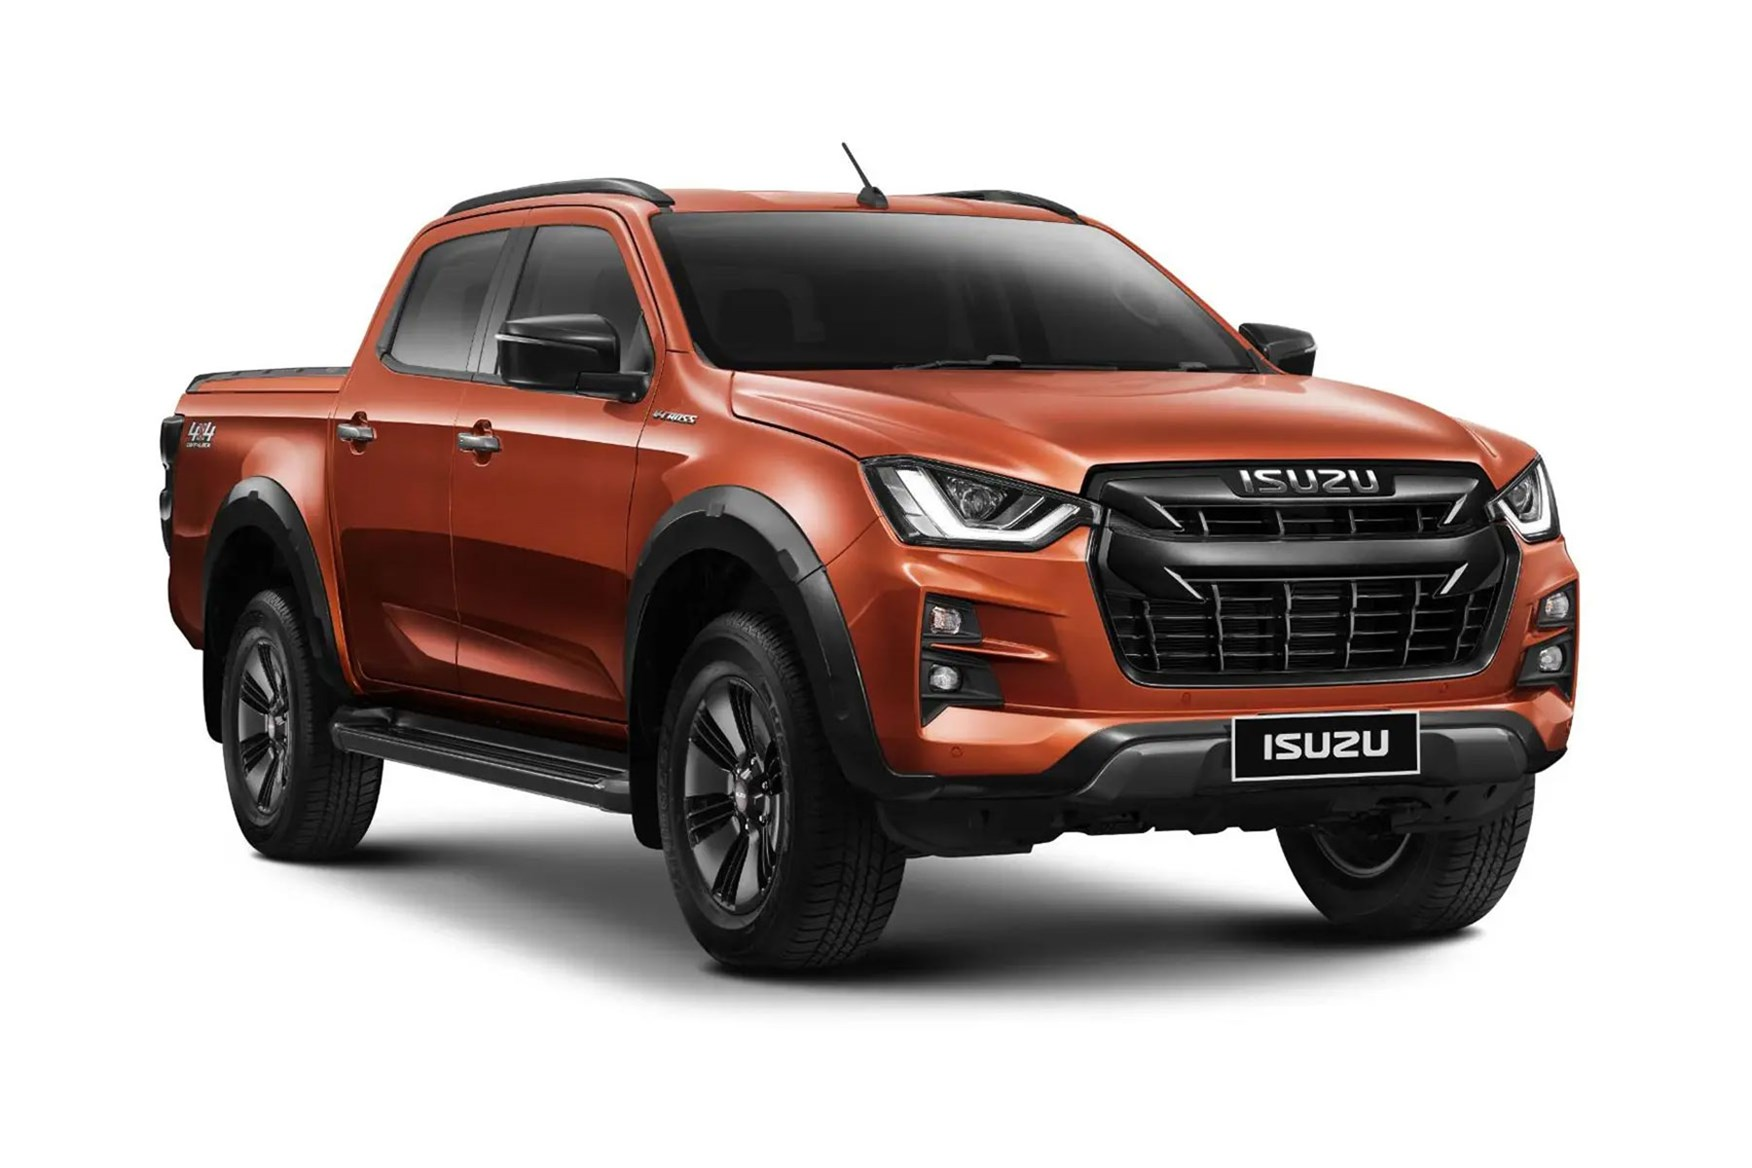 All-new Isuzu D-Max - coming to the UK in 2021, orange, front view